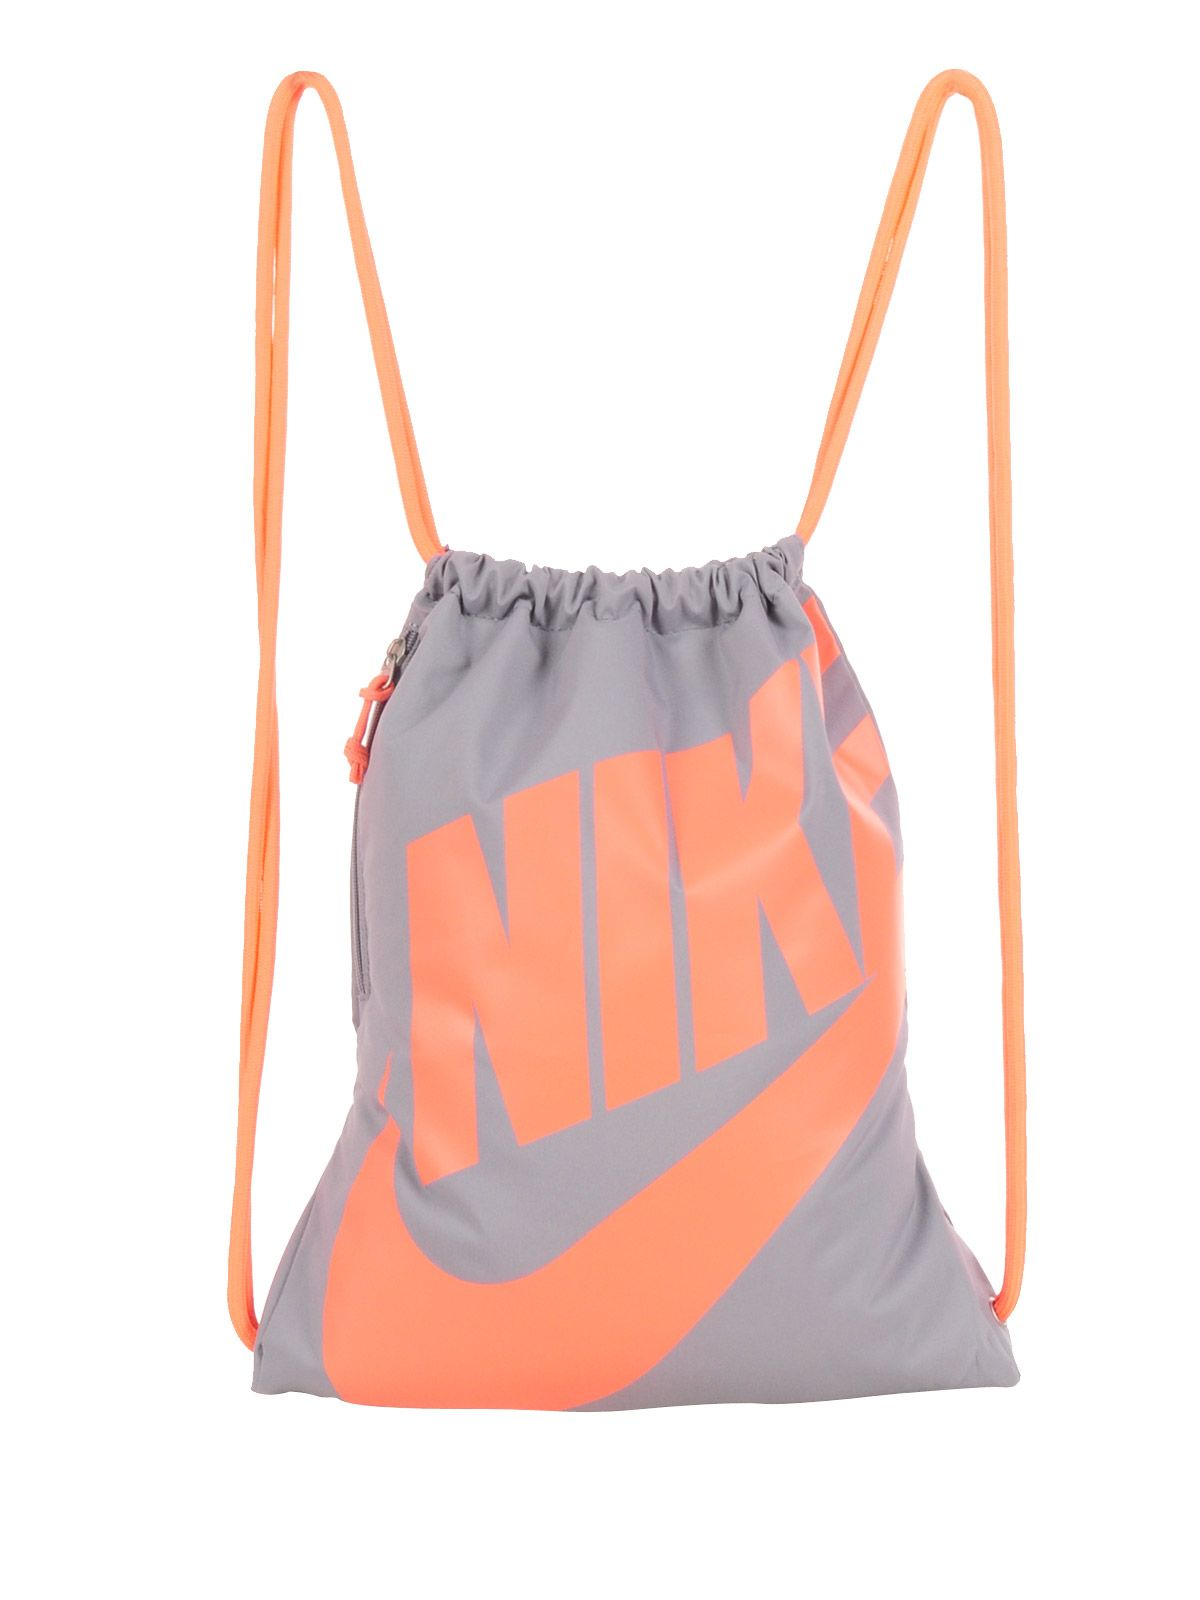 7f7117bc8c7e Nike Heritage Gymsack grey orange. Find this Pin and more ...